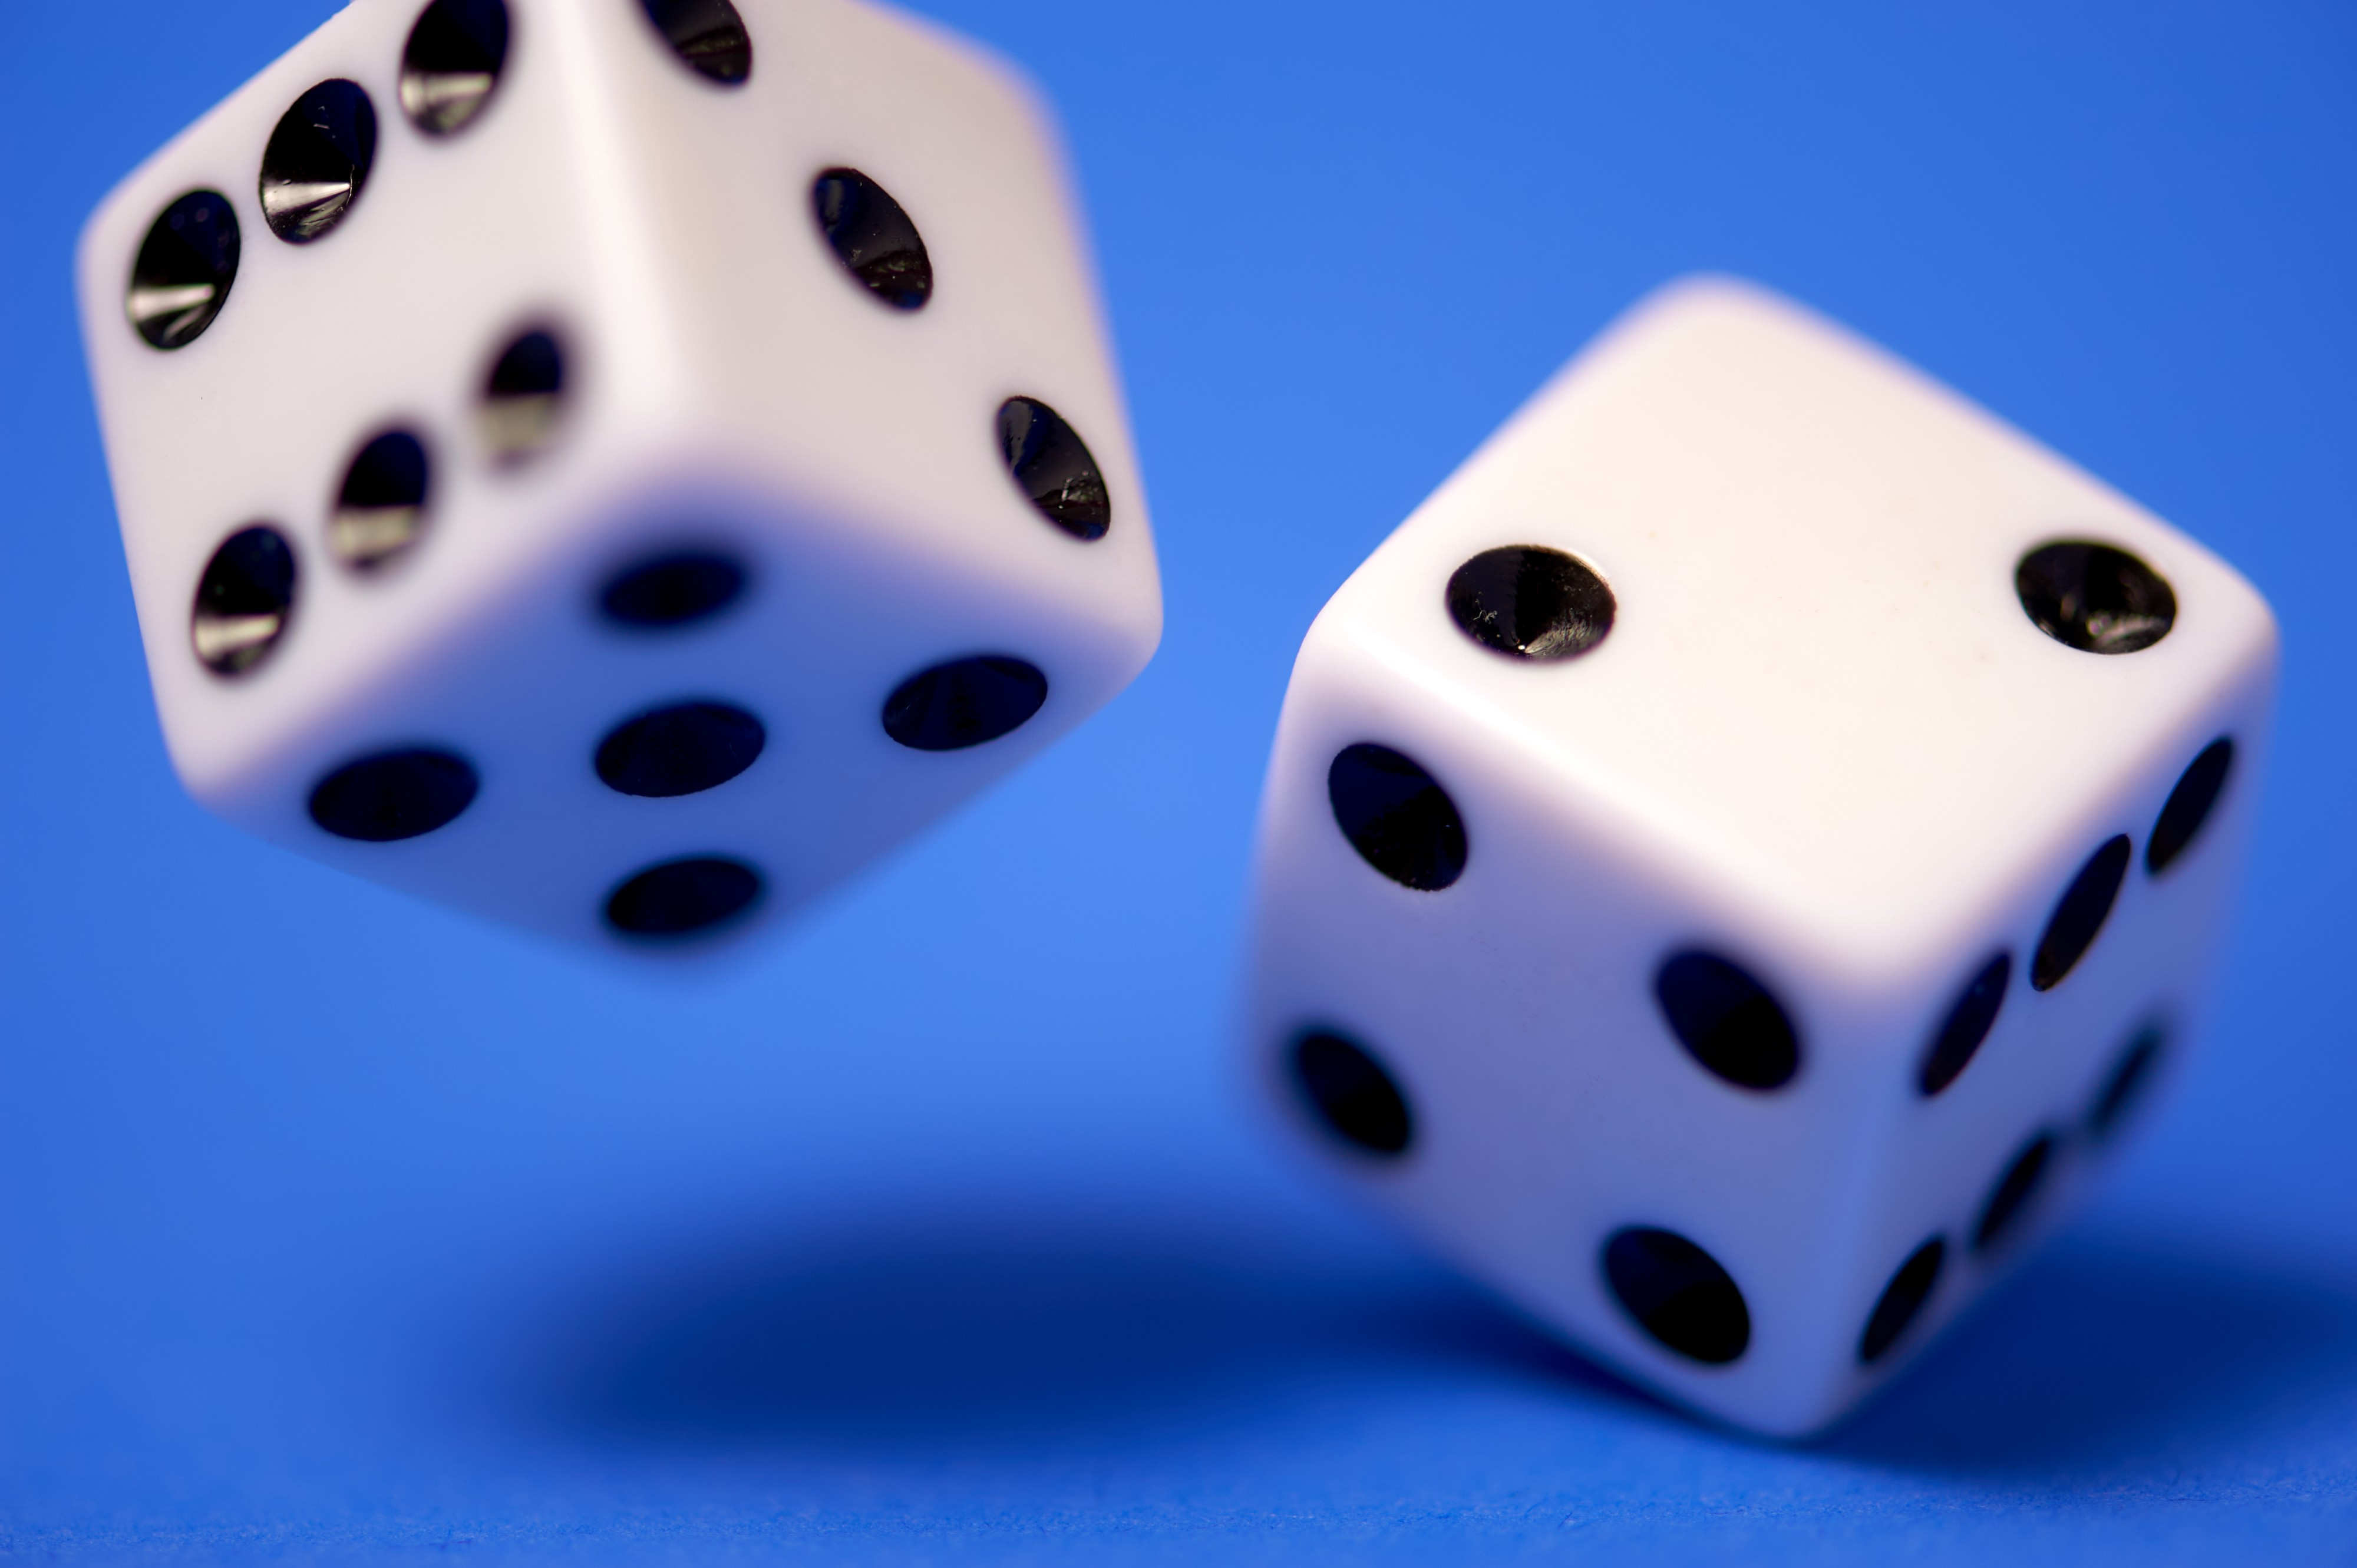 Hi there! BichoDoMato here. Picture of dices thrown on blue background.